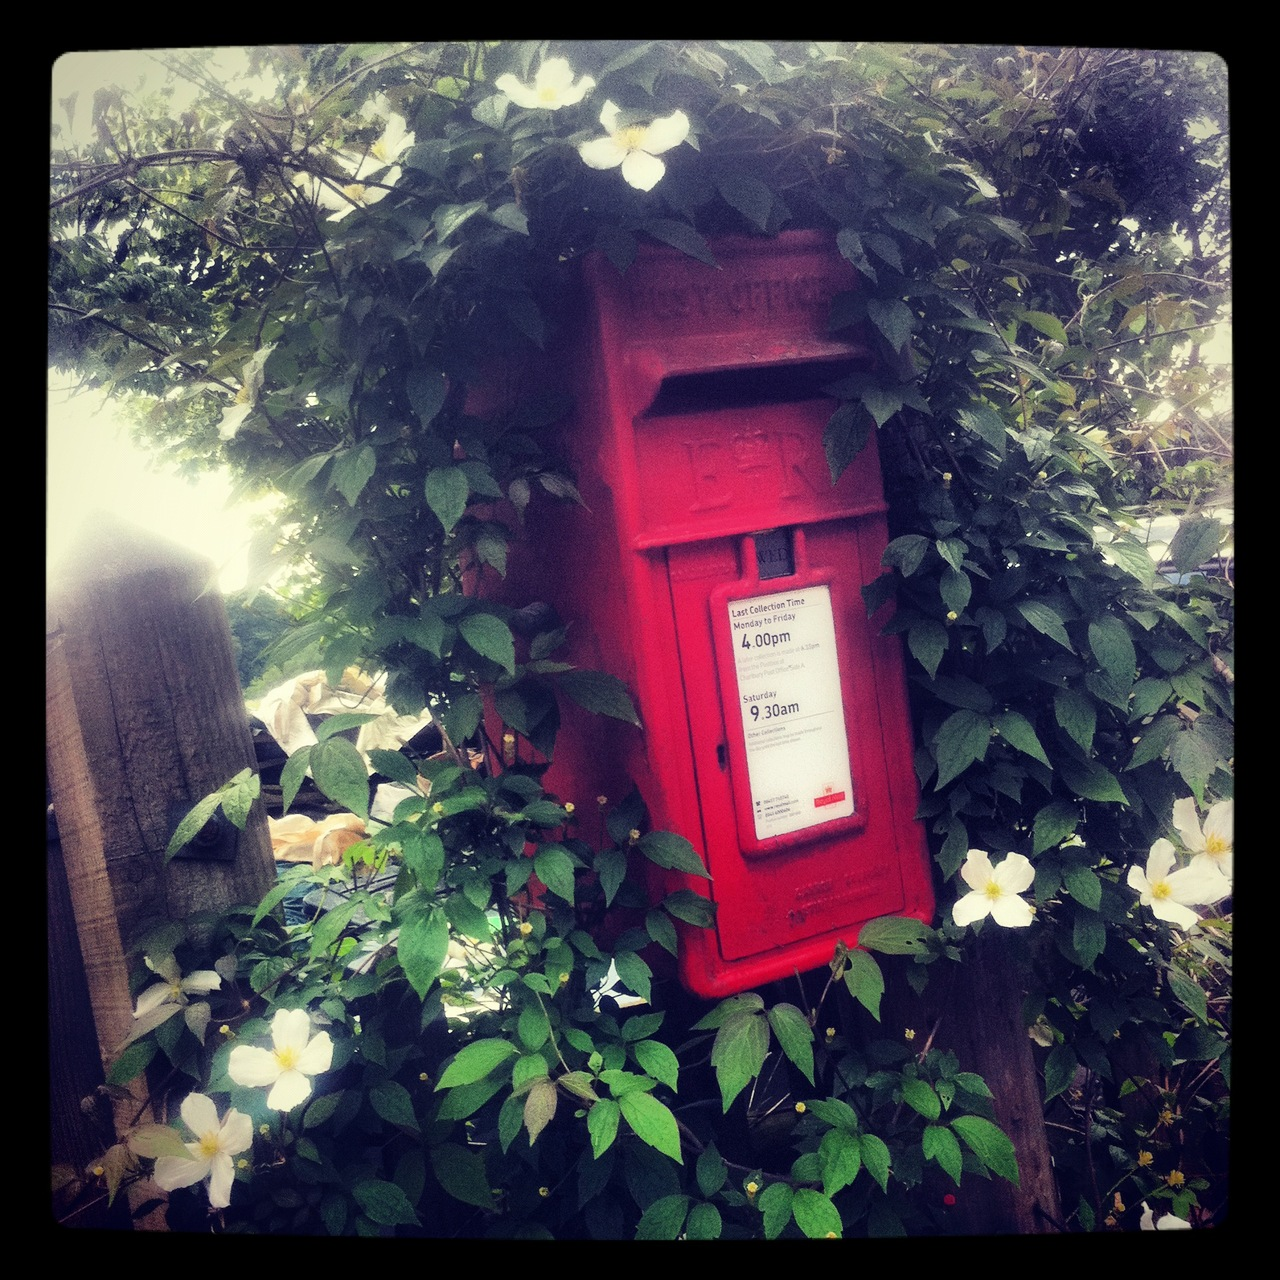 Beauty in the everyday     Today I took a quick stroll to the postbox at the bottom of our lane and found it adorned in the most beautiful white clematis. With deep green leaves and yoke-like centres to the flowers, set against the pillarbox red, it really was a sight to behold.     A welcome distraction in a jam-packed day of work that put a little smile on my face and a spring in my step.